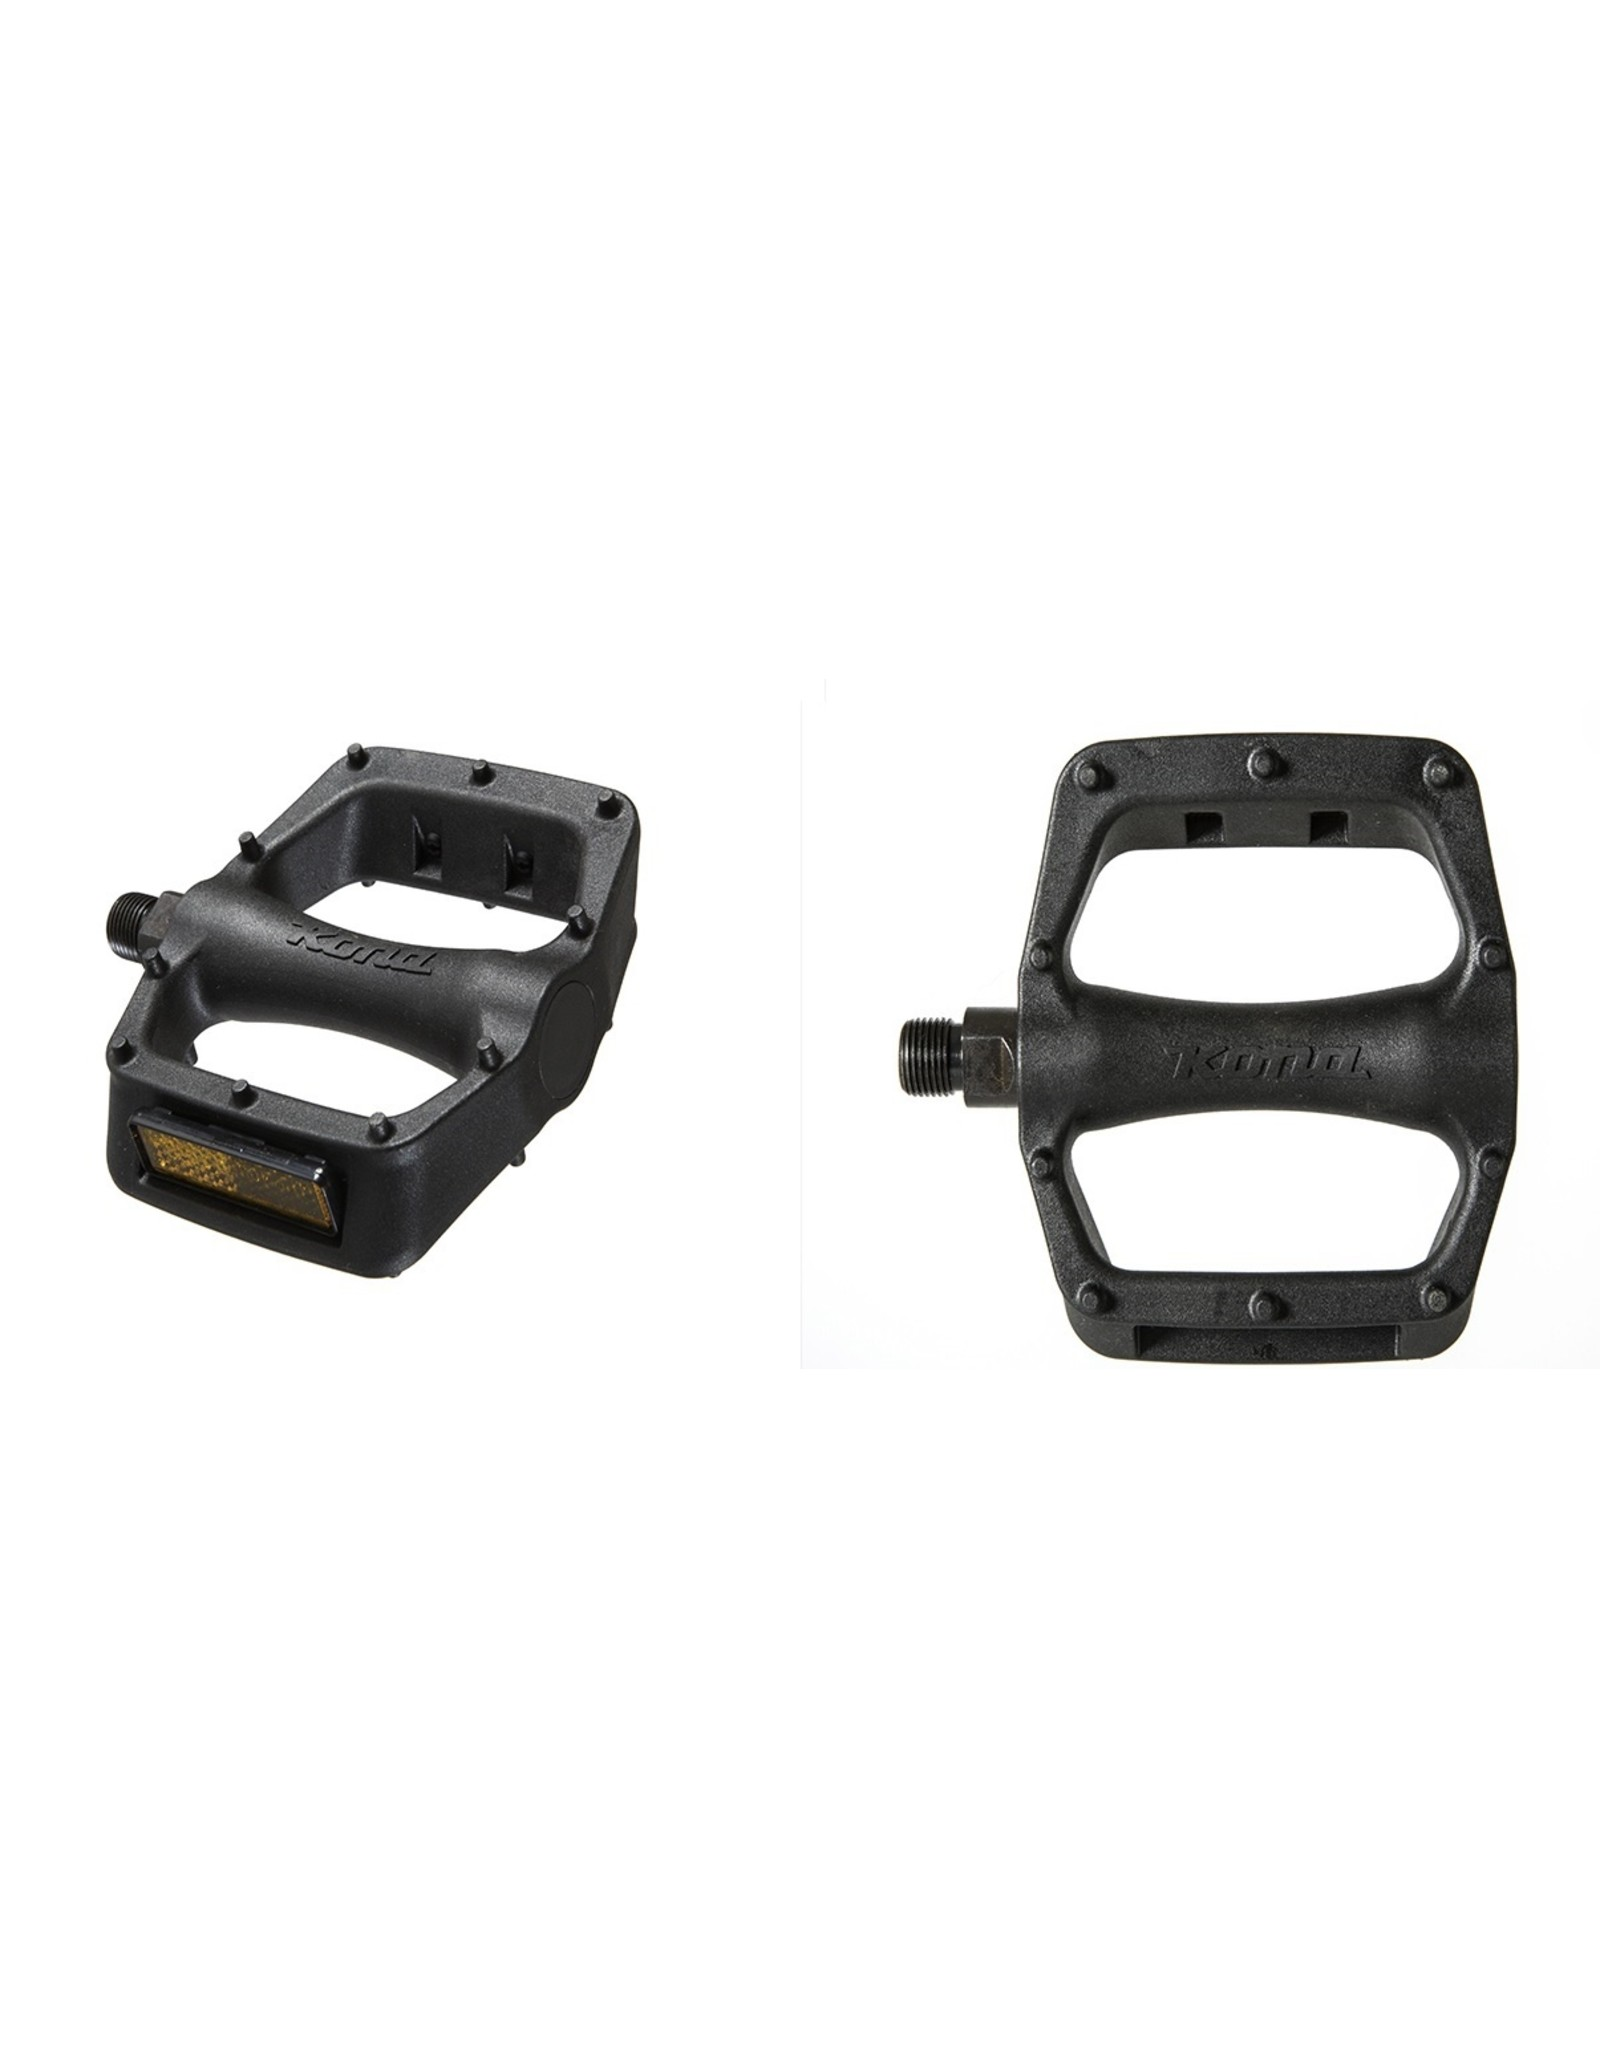 KONA Kona JS2 Pedals Plastic Single